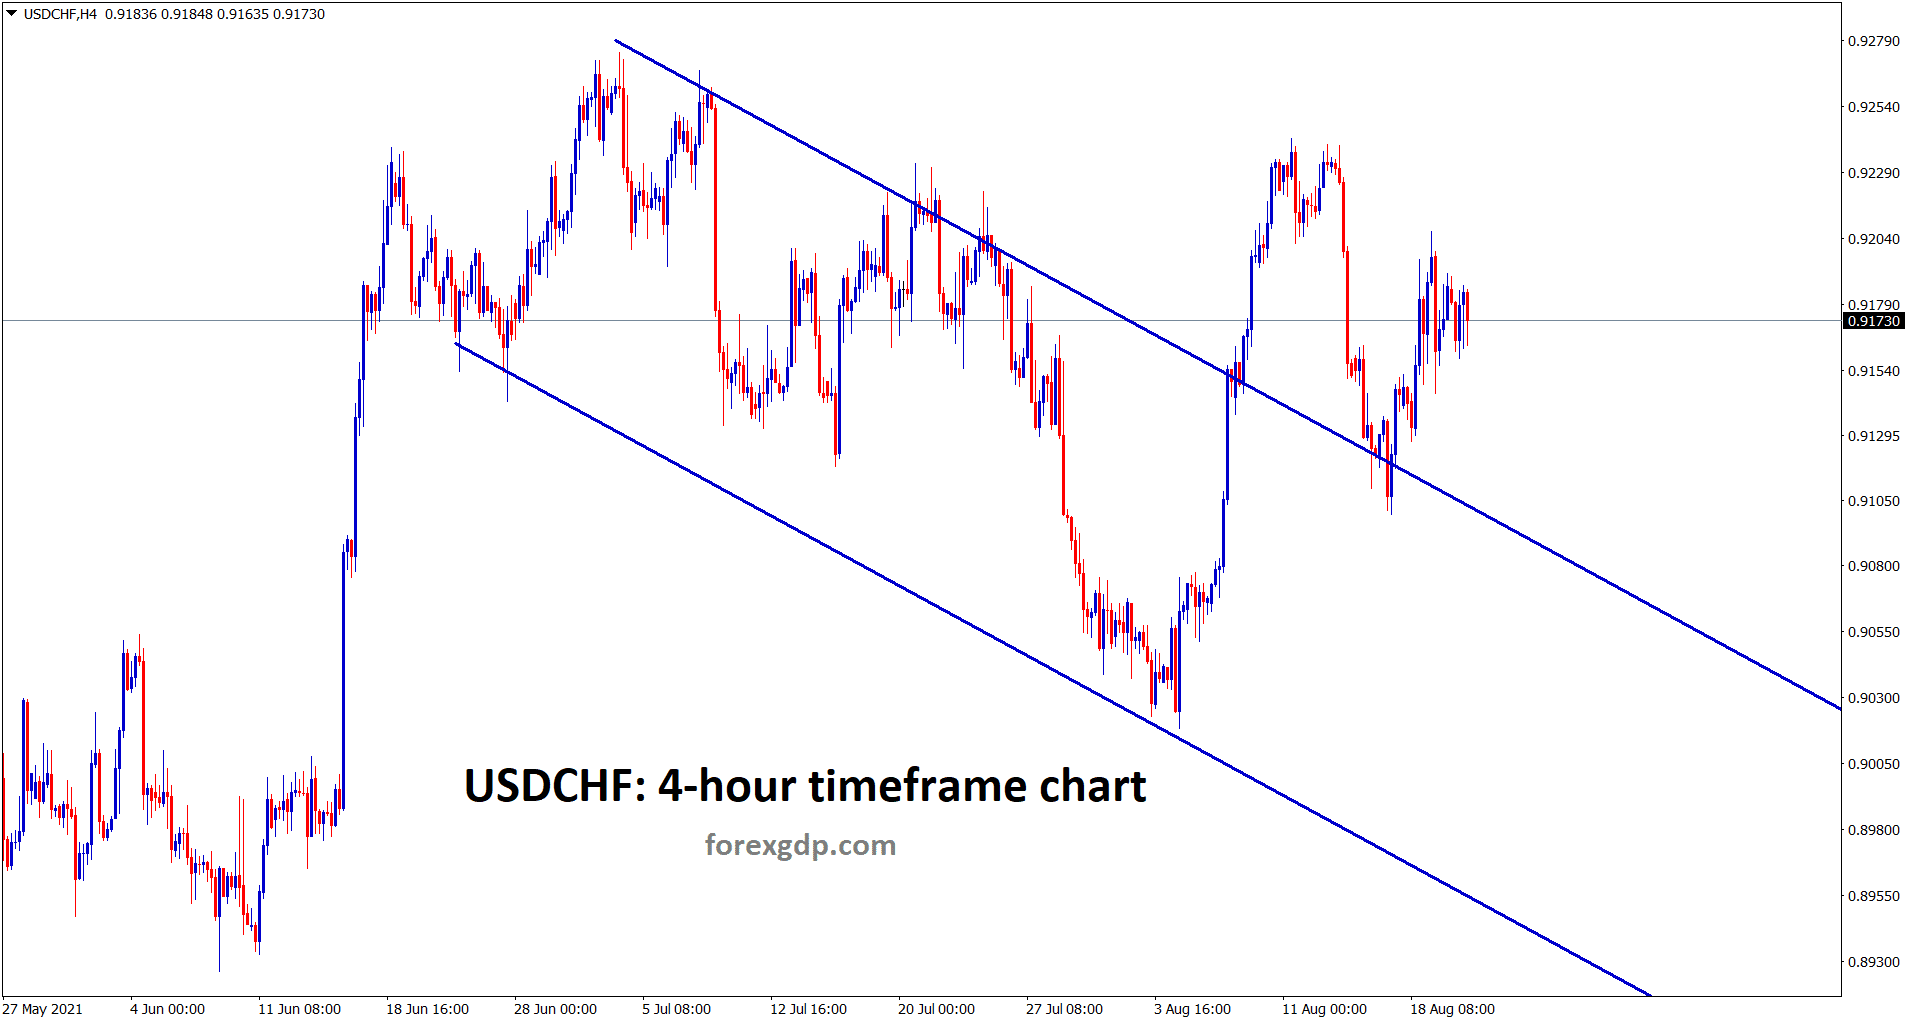 USDCHF breakout and retest the previous descending channel